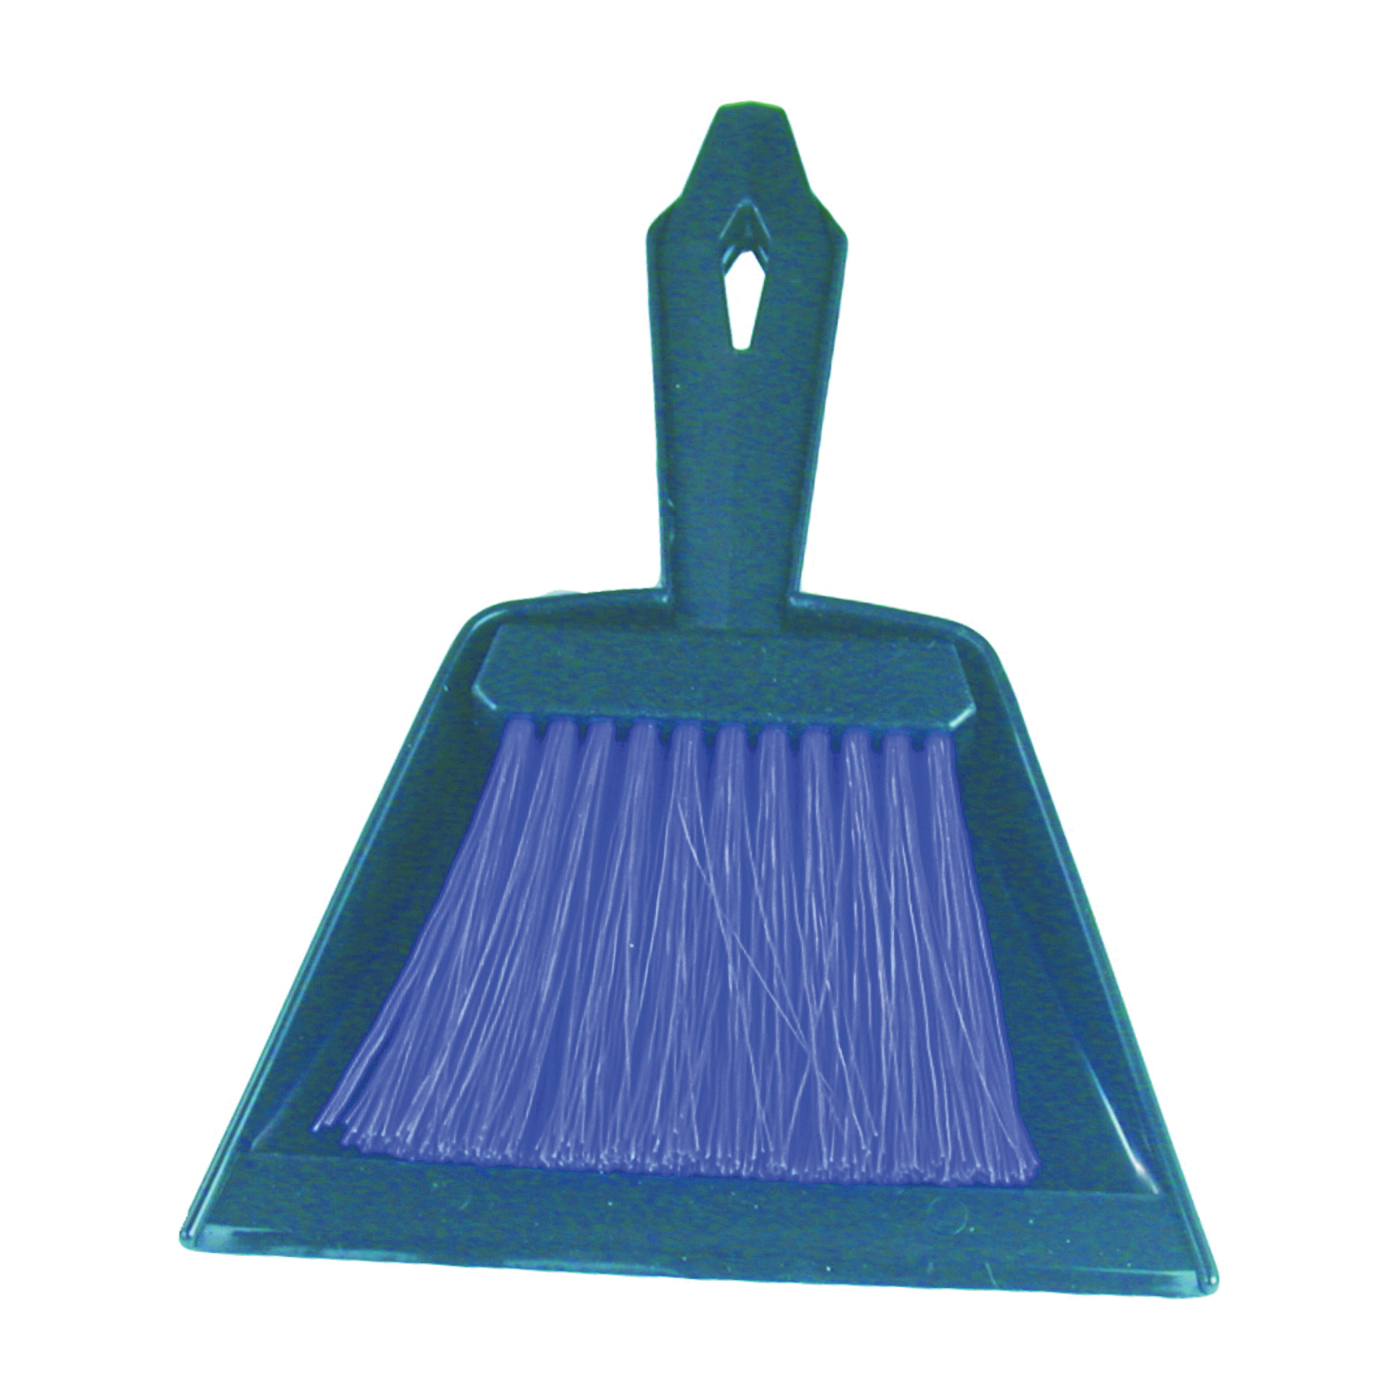 Picture of BIRDWELL 376-24 Mini Whisk Broom, Polypropylene Bristle, 9-3/4 in OAL